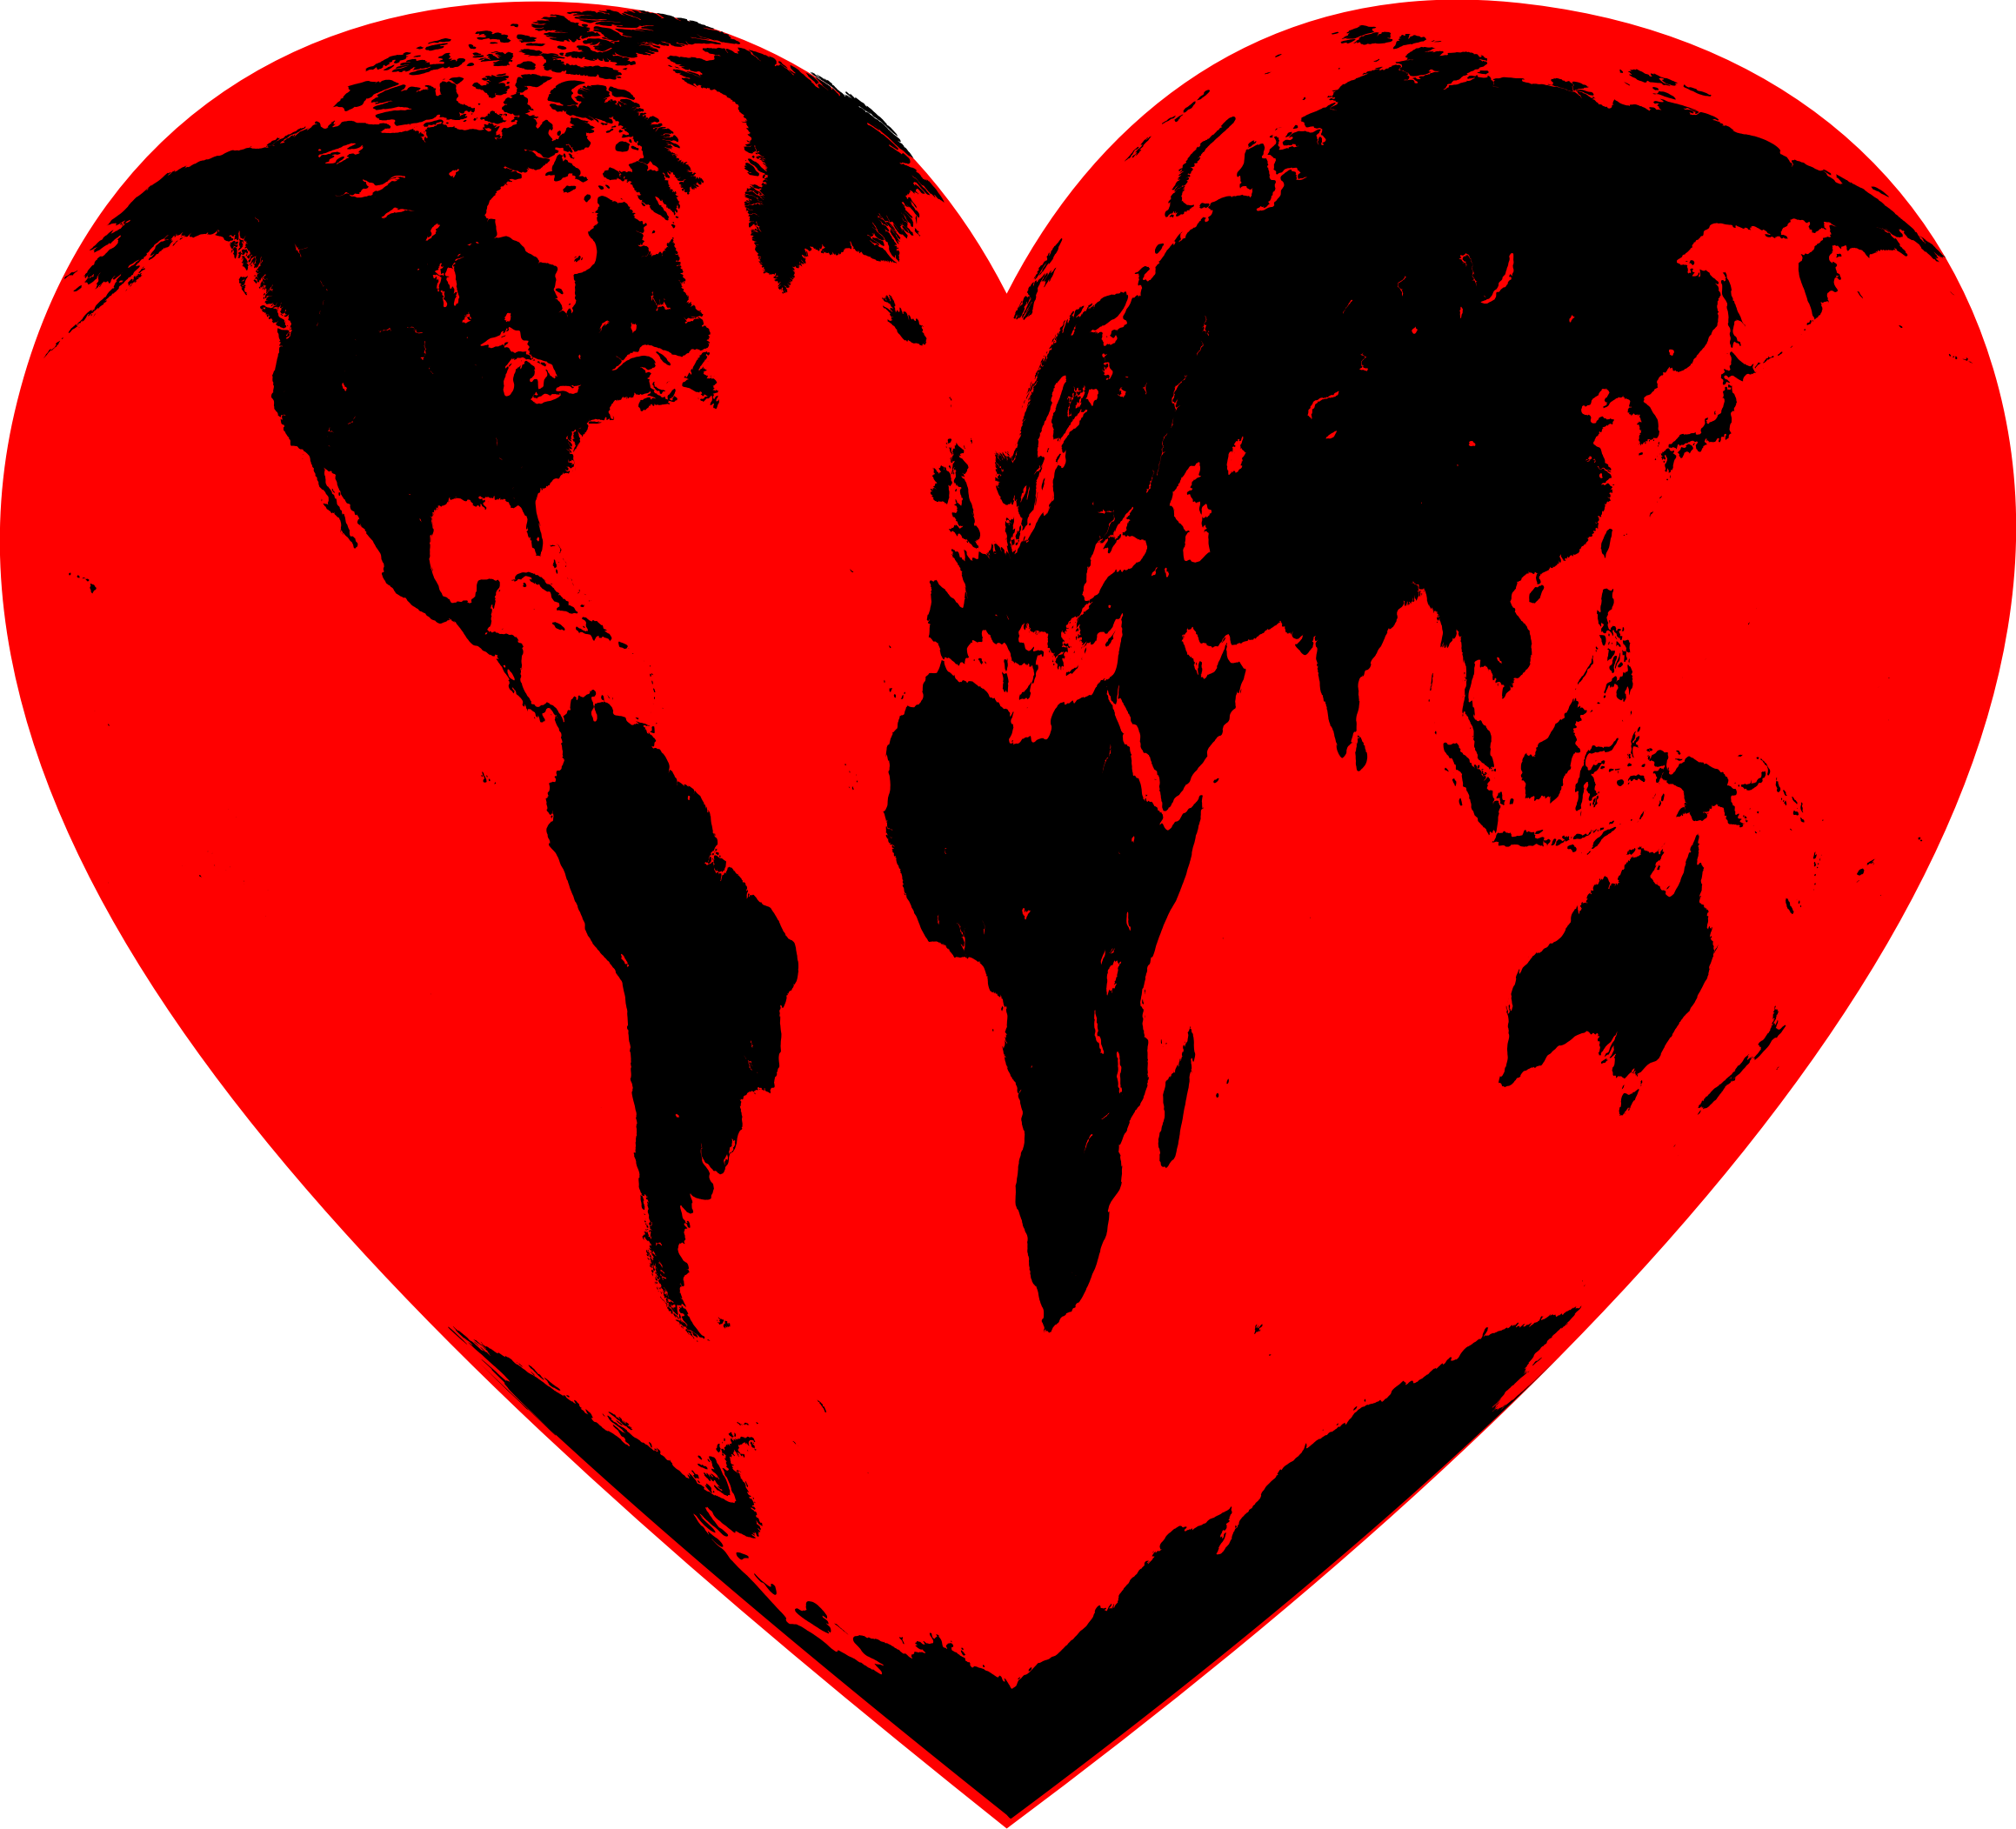 Heart big image png. Planet clipart red planet